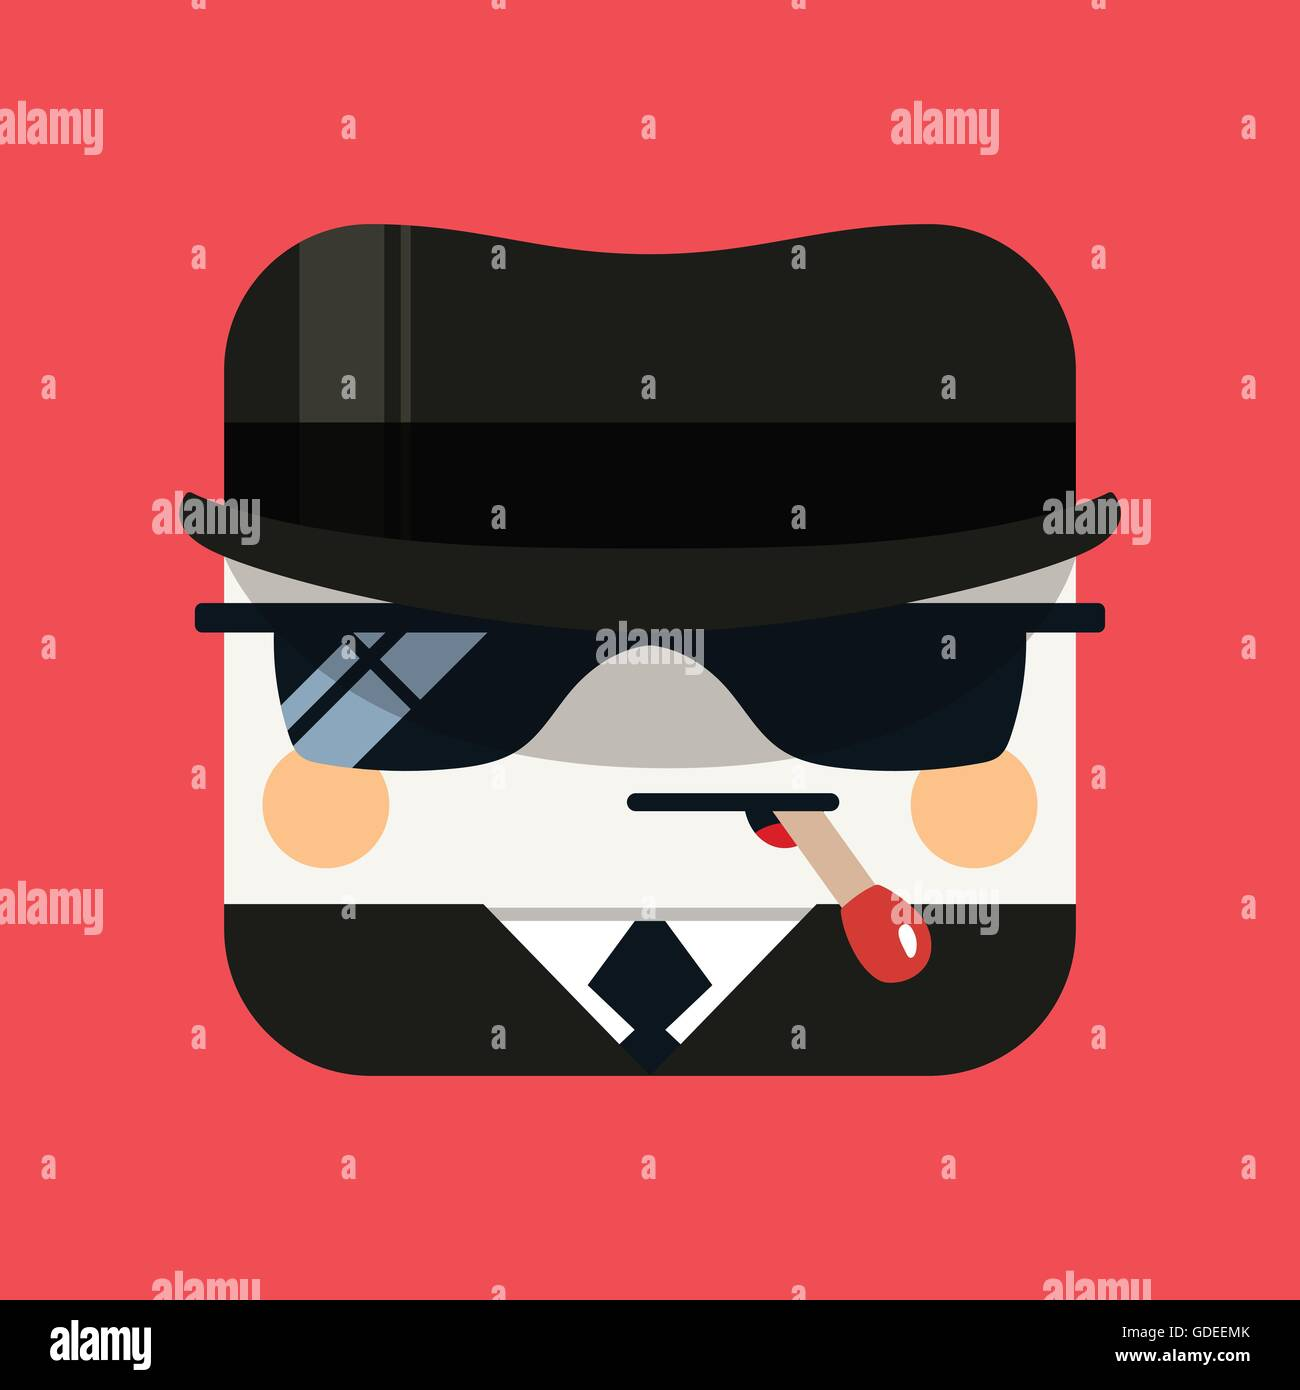 Spy avatar illustration. Trendy emissary squared icon with shadows in flat style. - Stock Vector